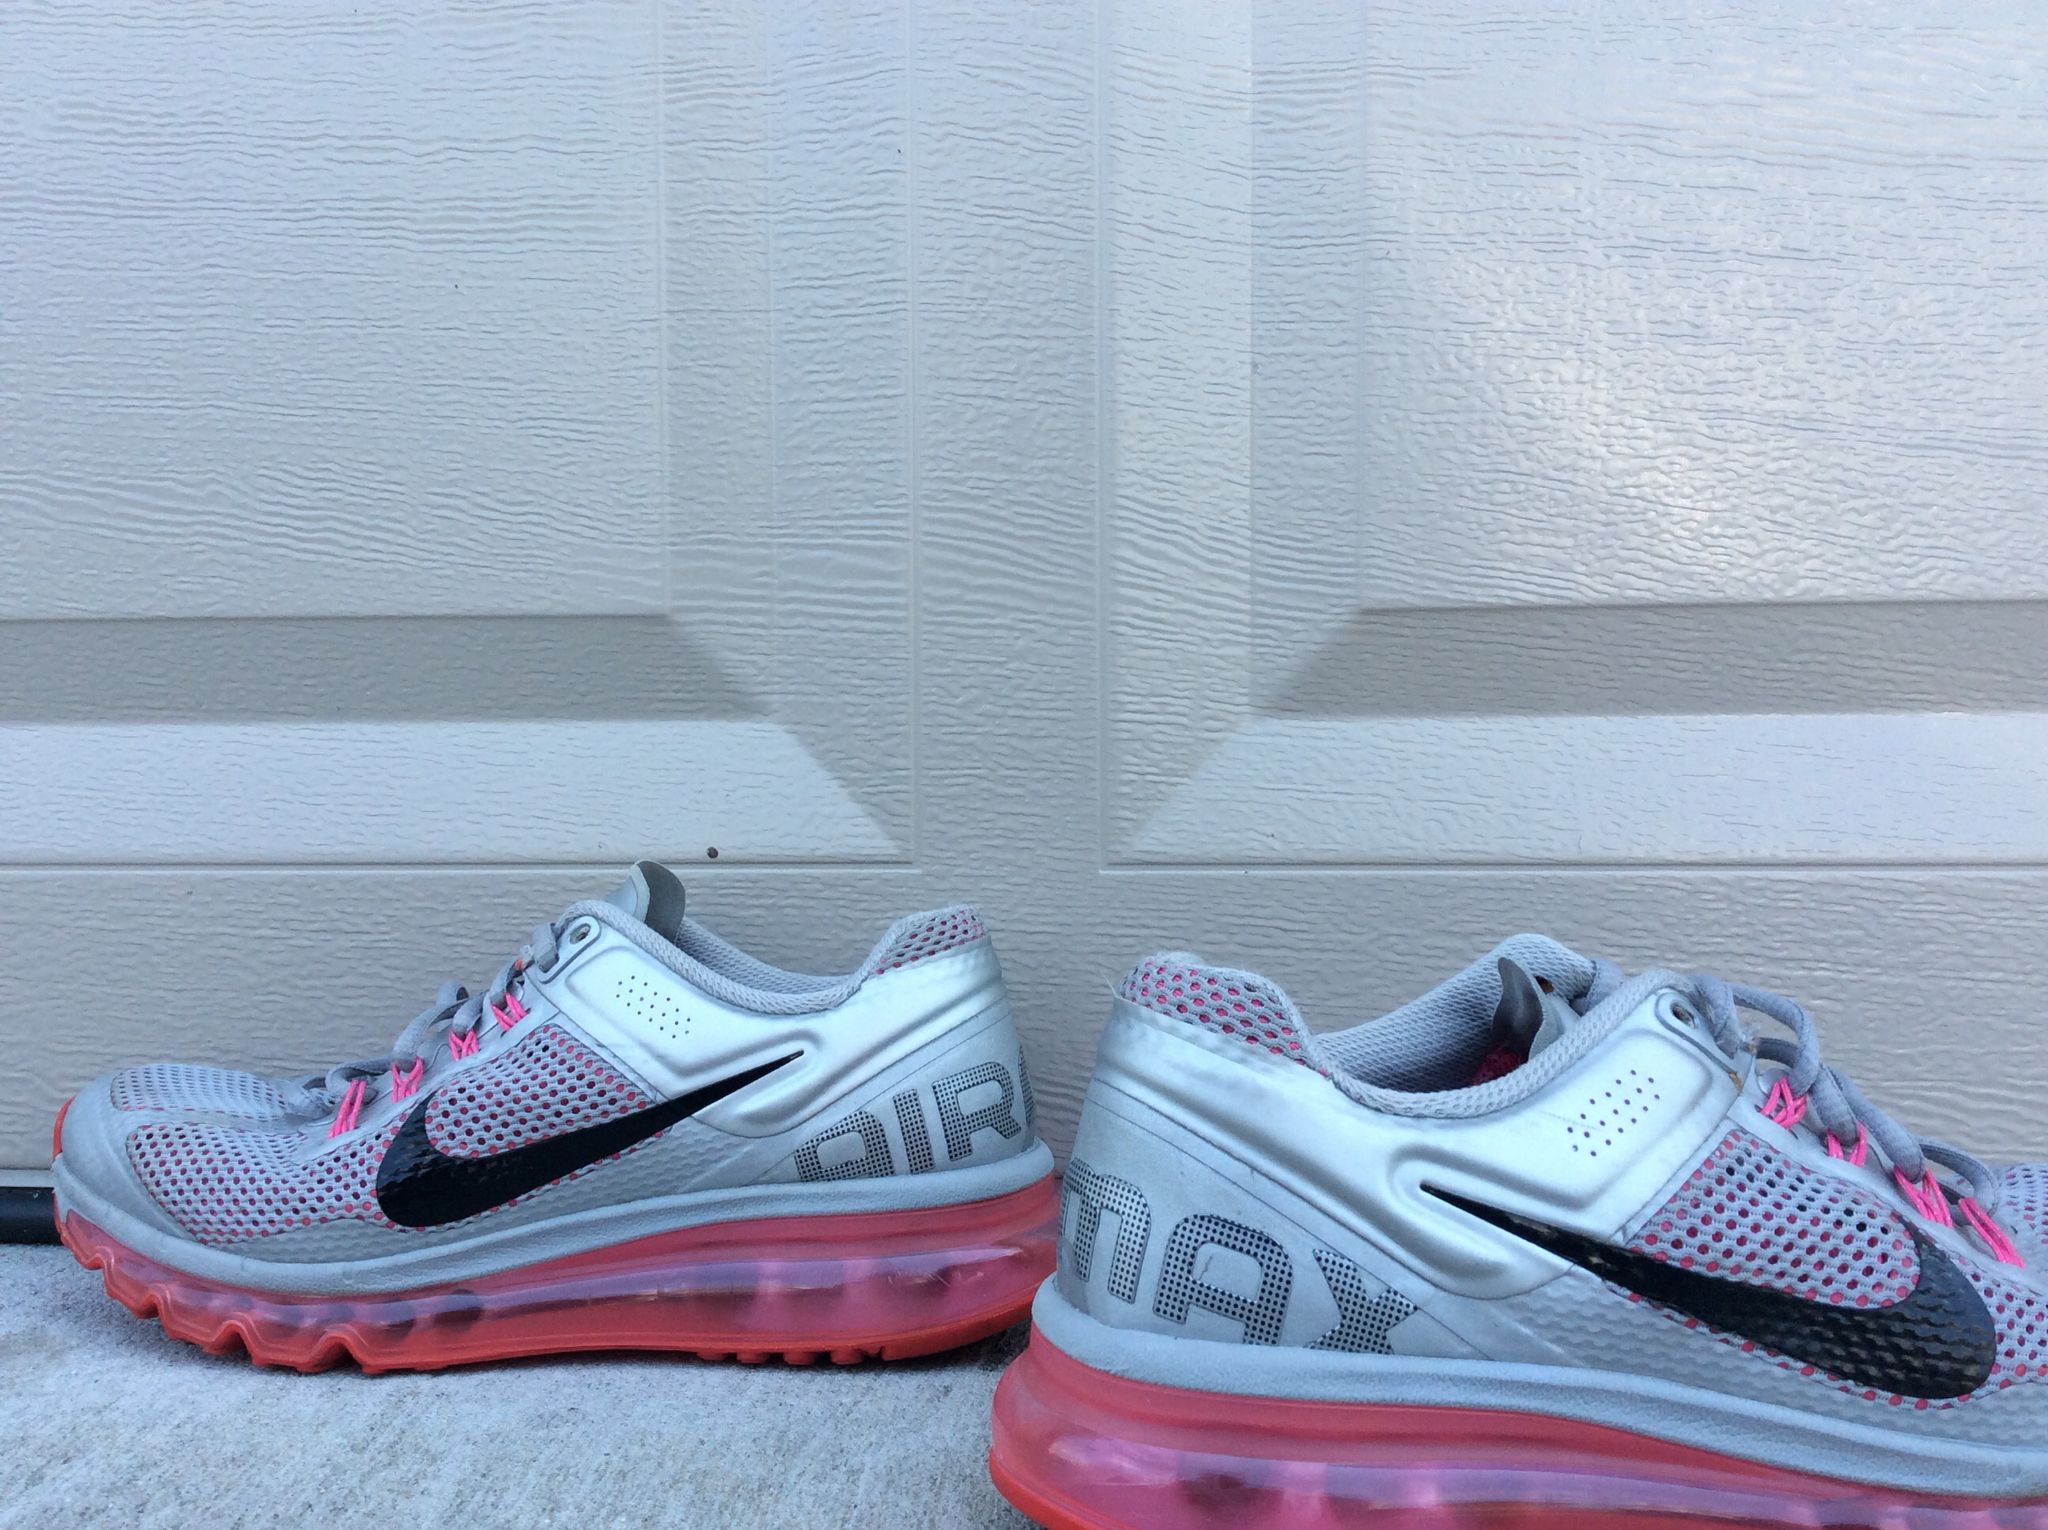 Nike Air Max Shoes in women's size 8. No flaws or imperfections. Find on